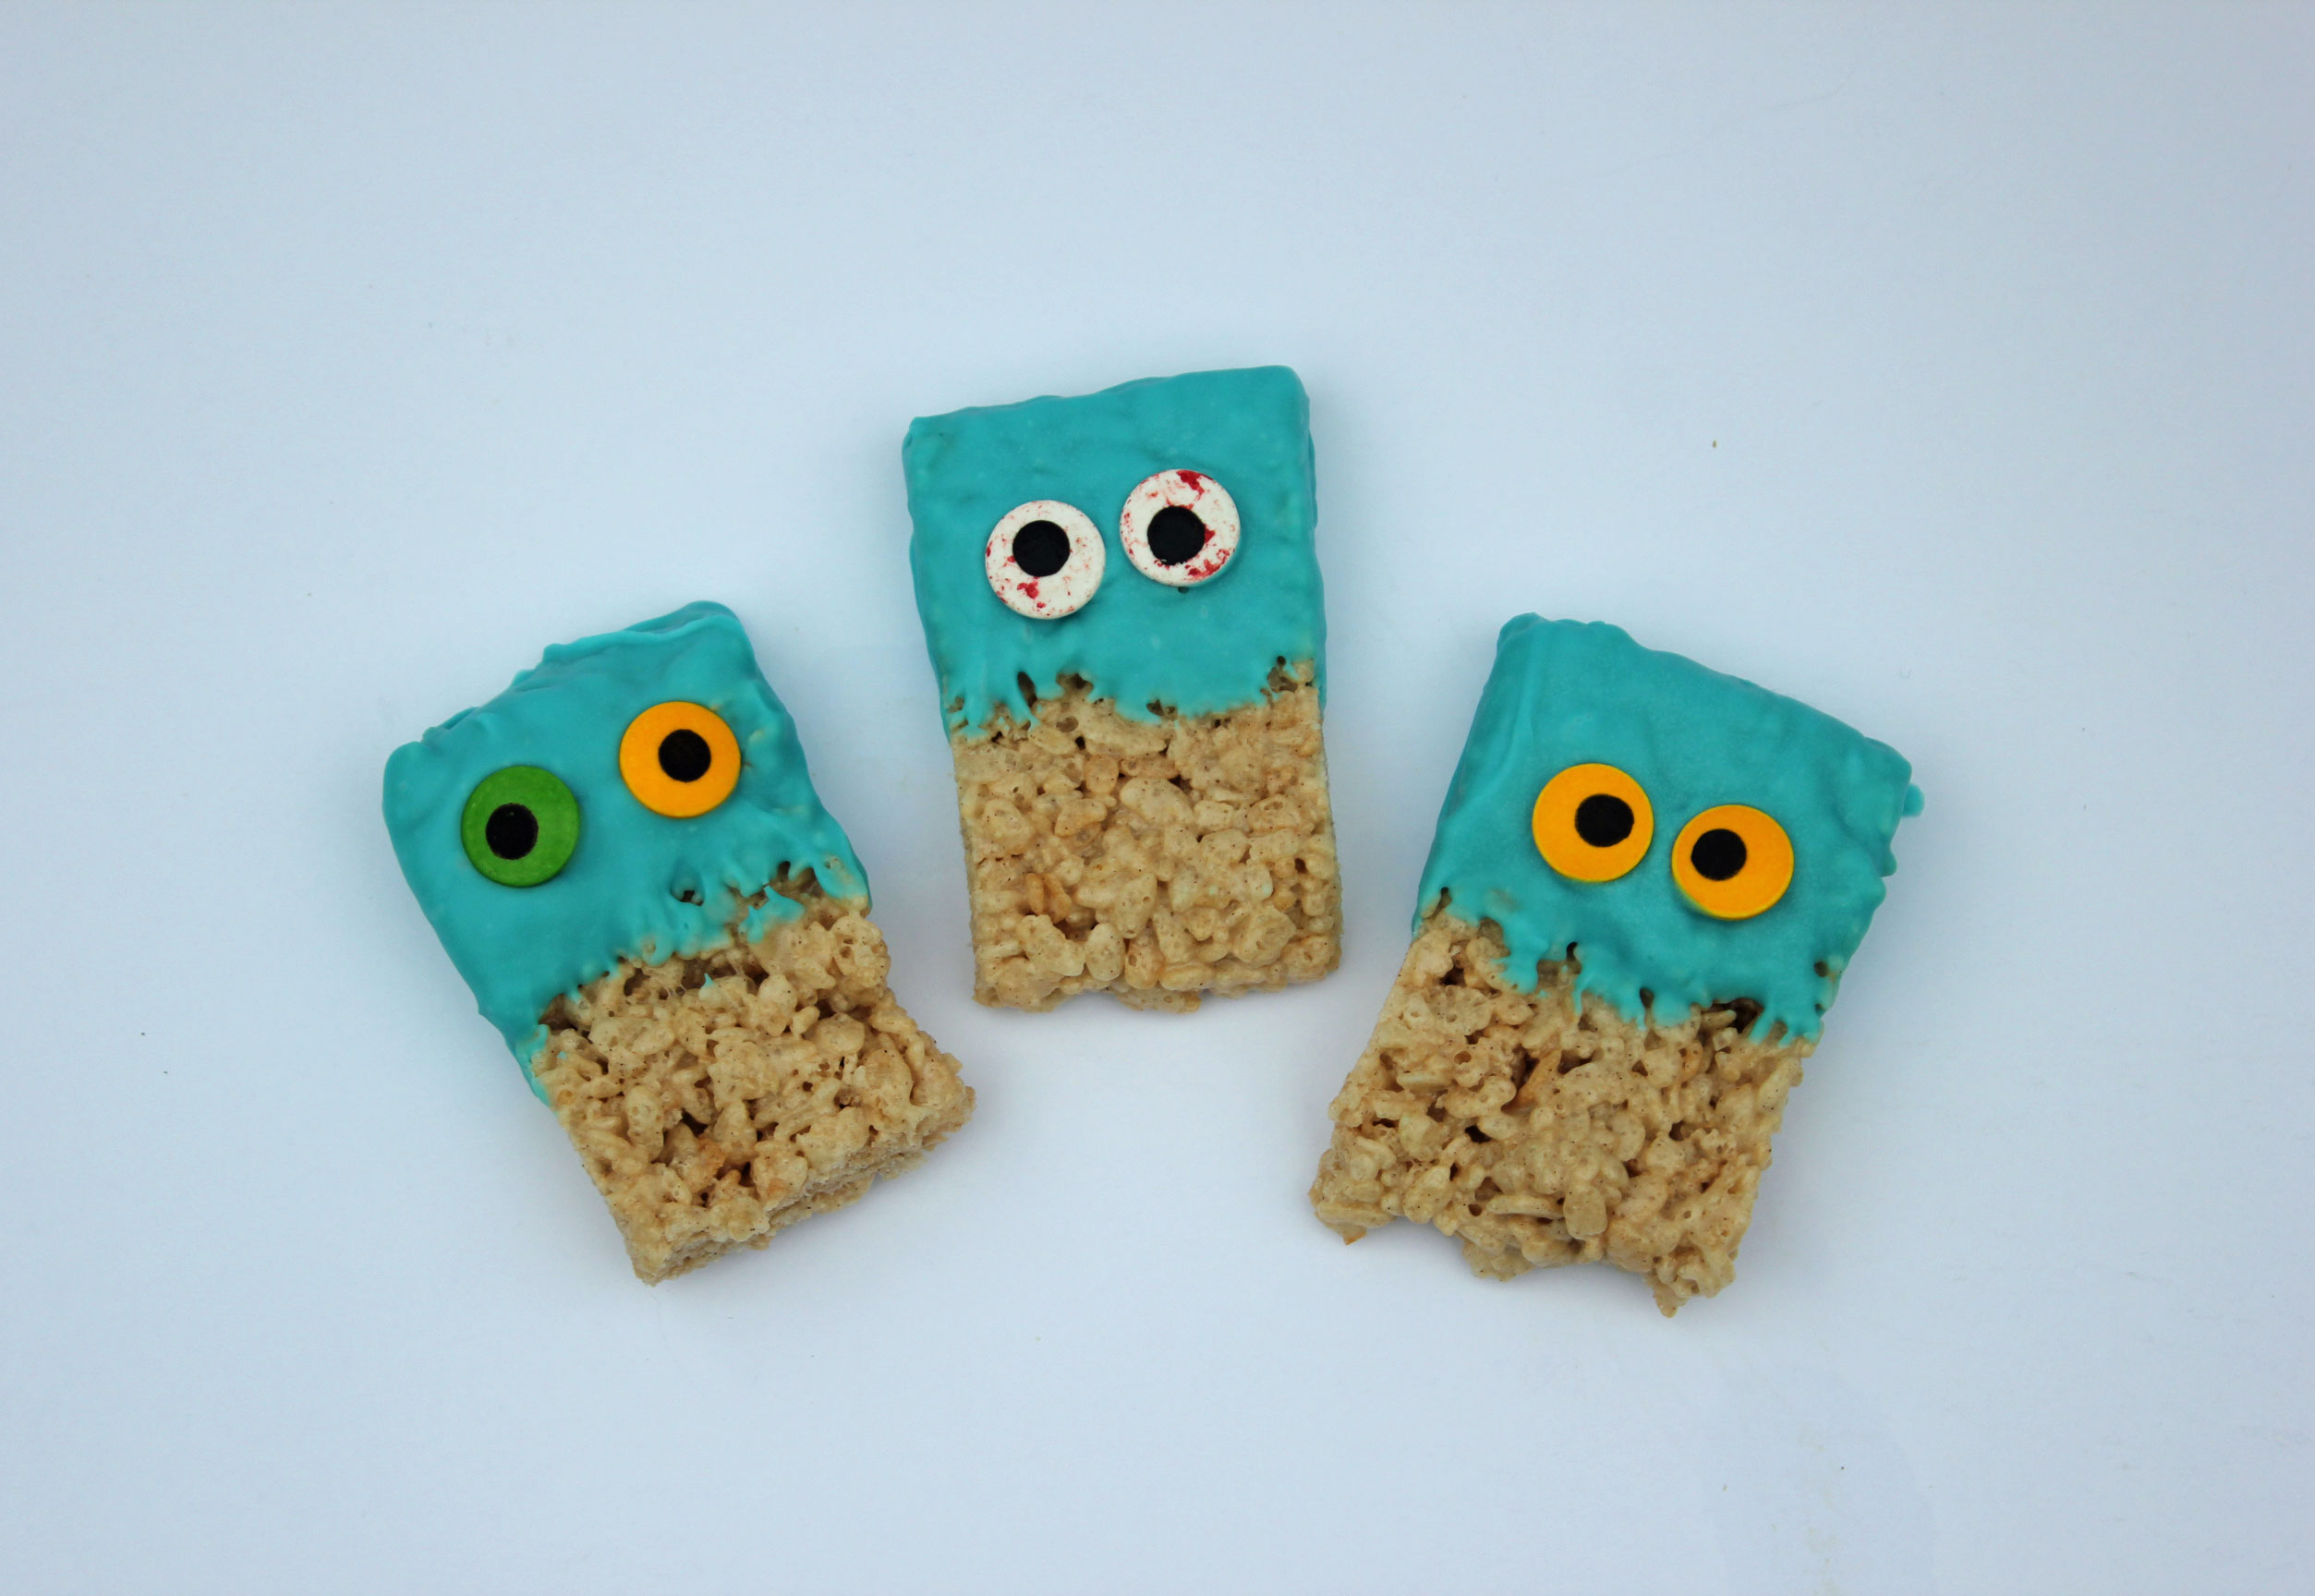 Googly Eyed Rice Krispies